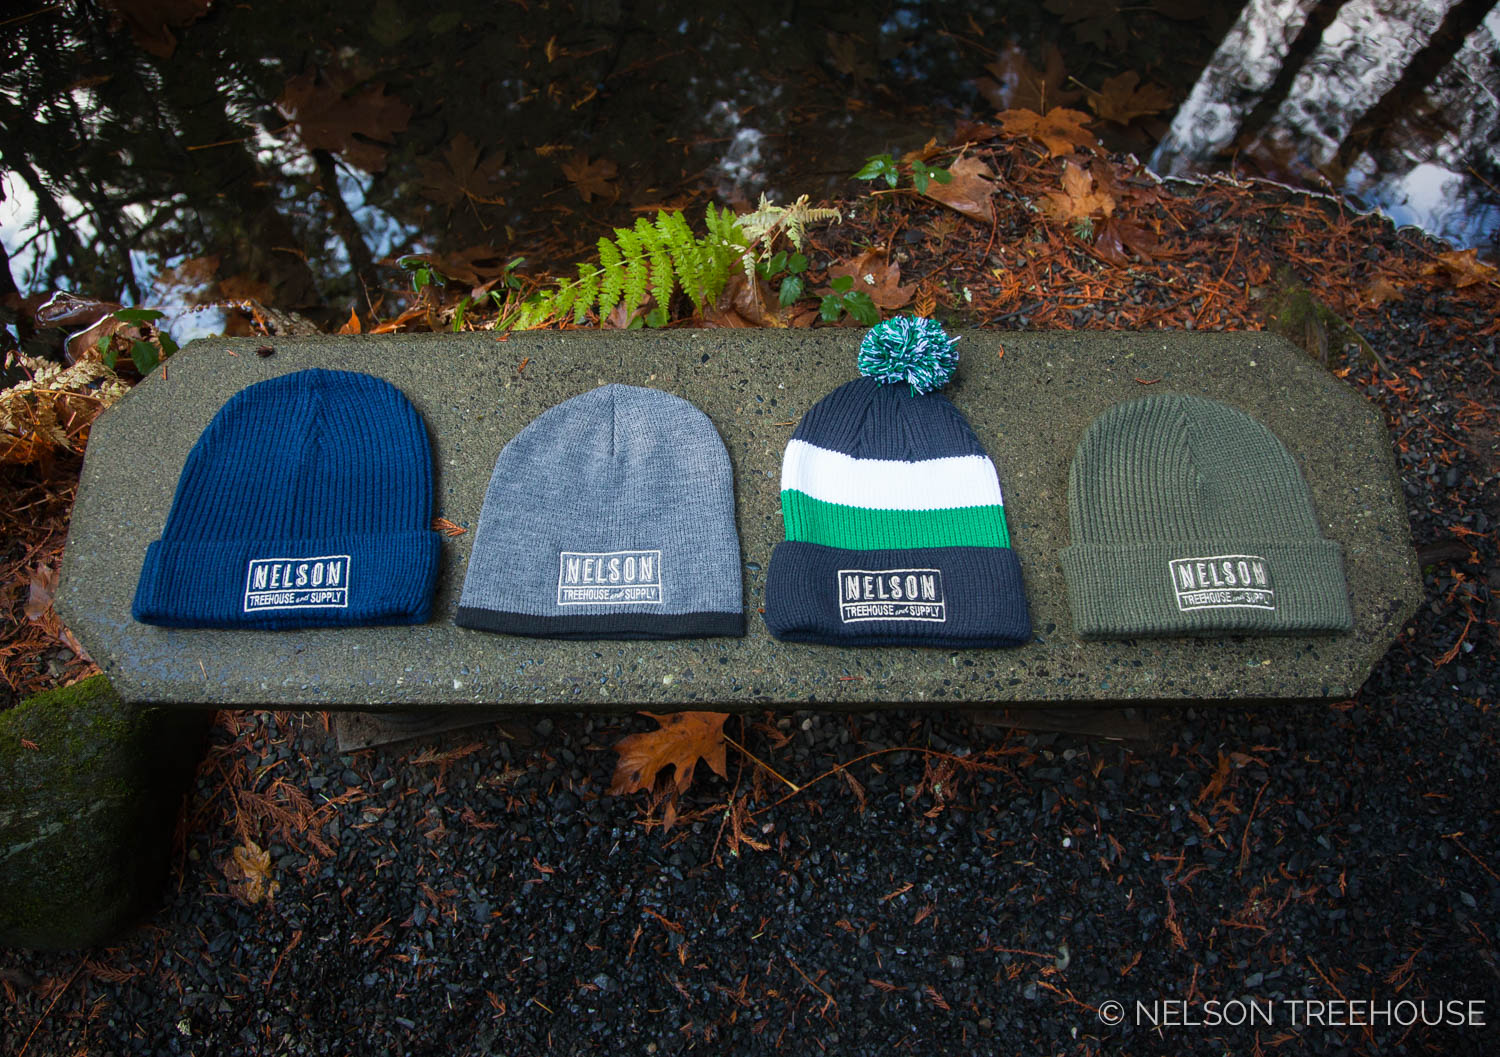 Nelson Treehouse beanies